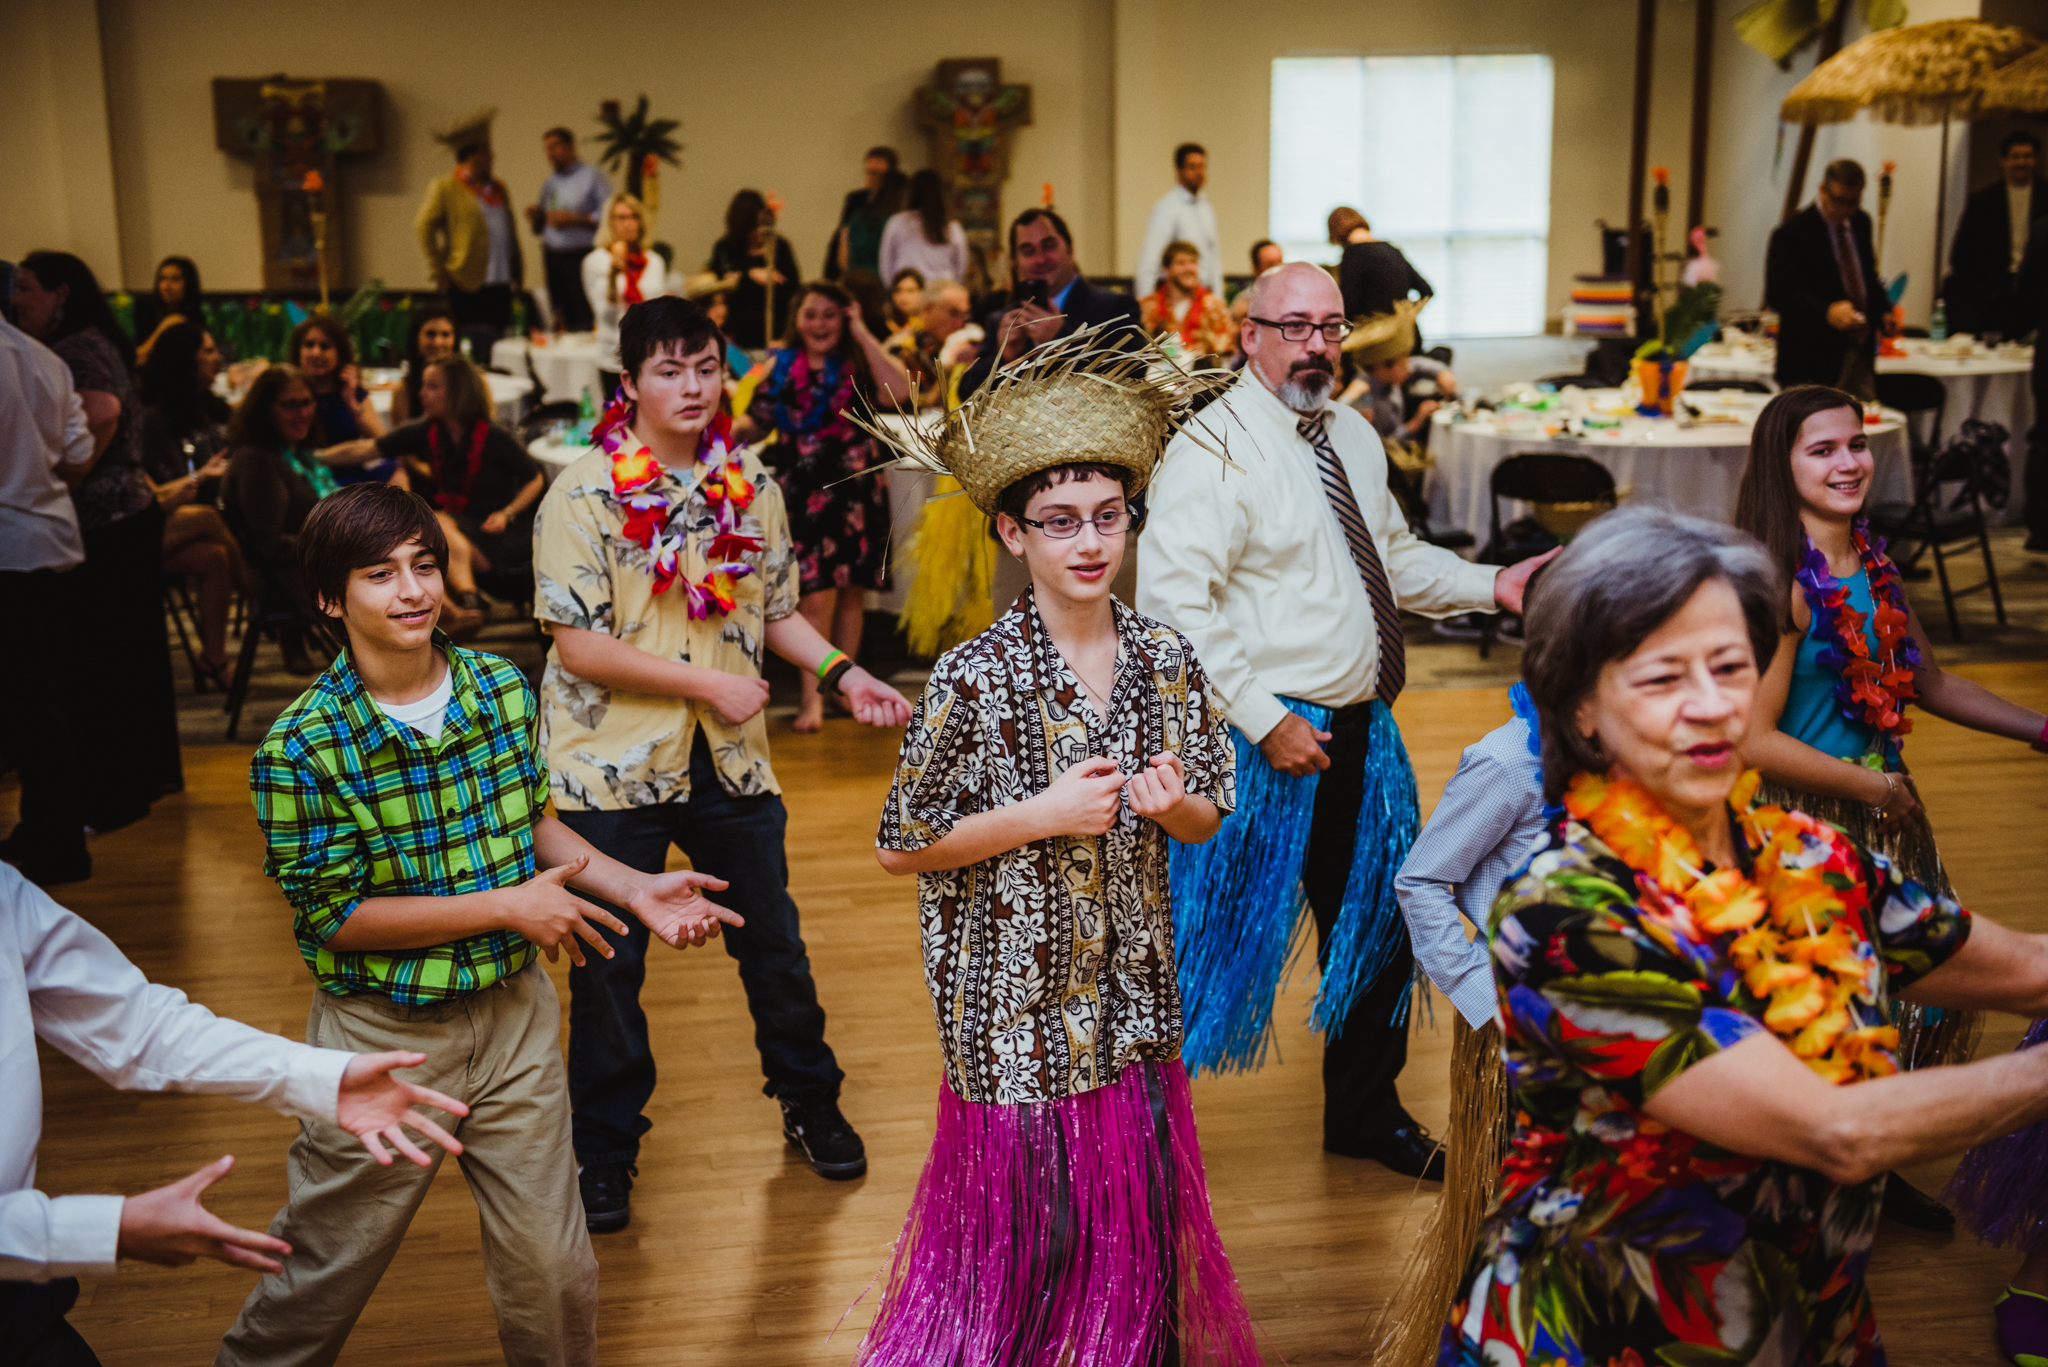 dancing-the-hula-at-the-mitzvah-celebration-in-Raleigh.jpg